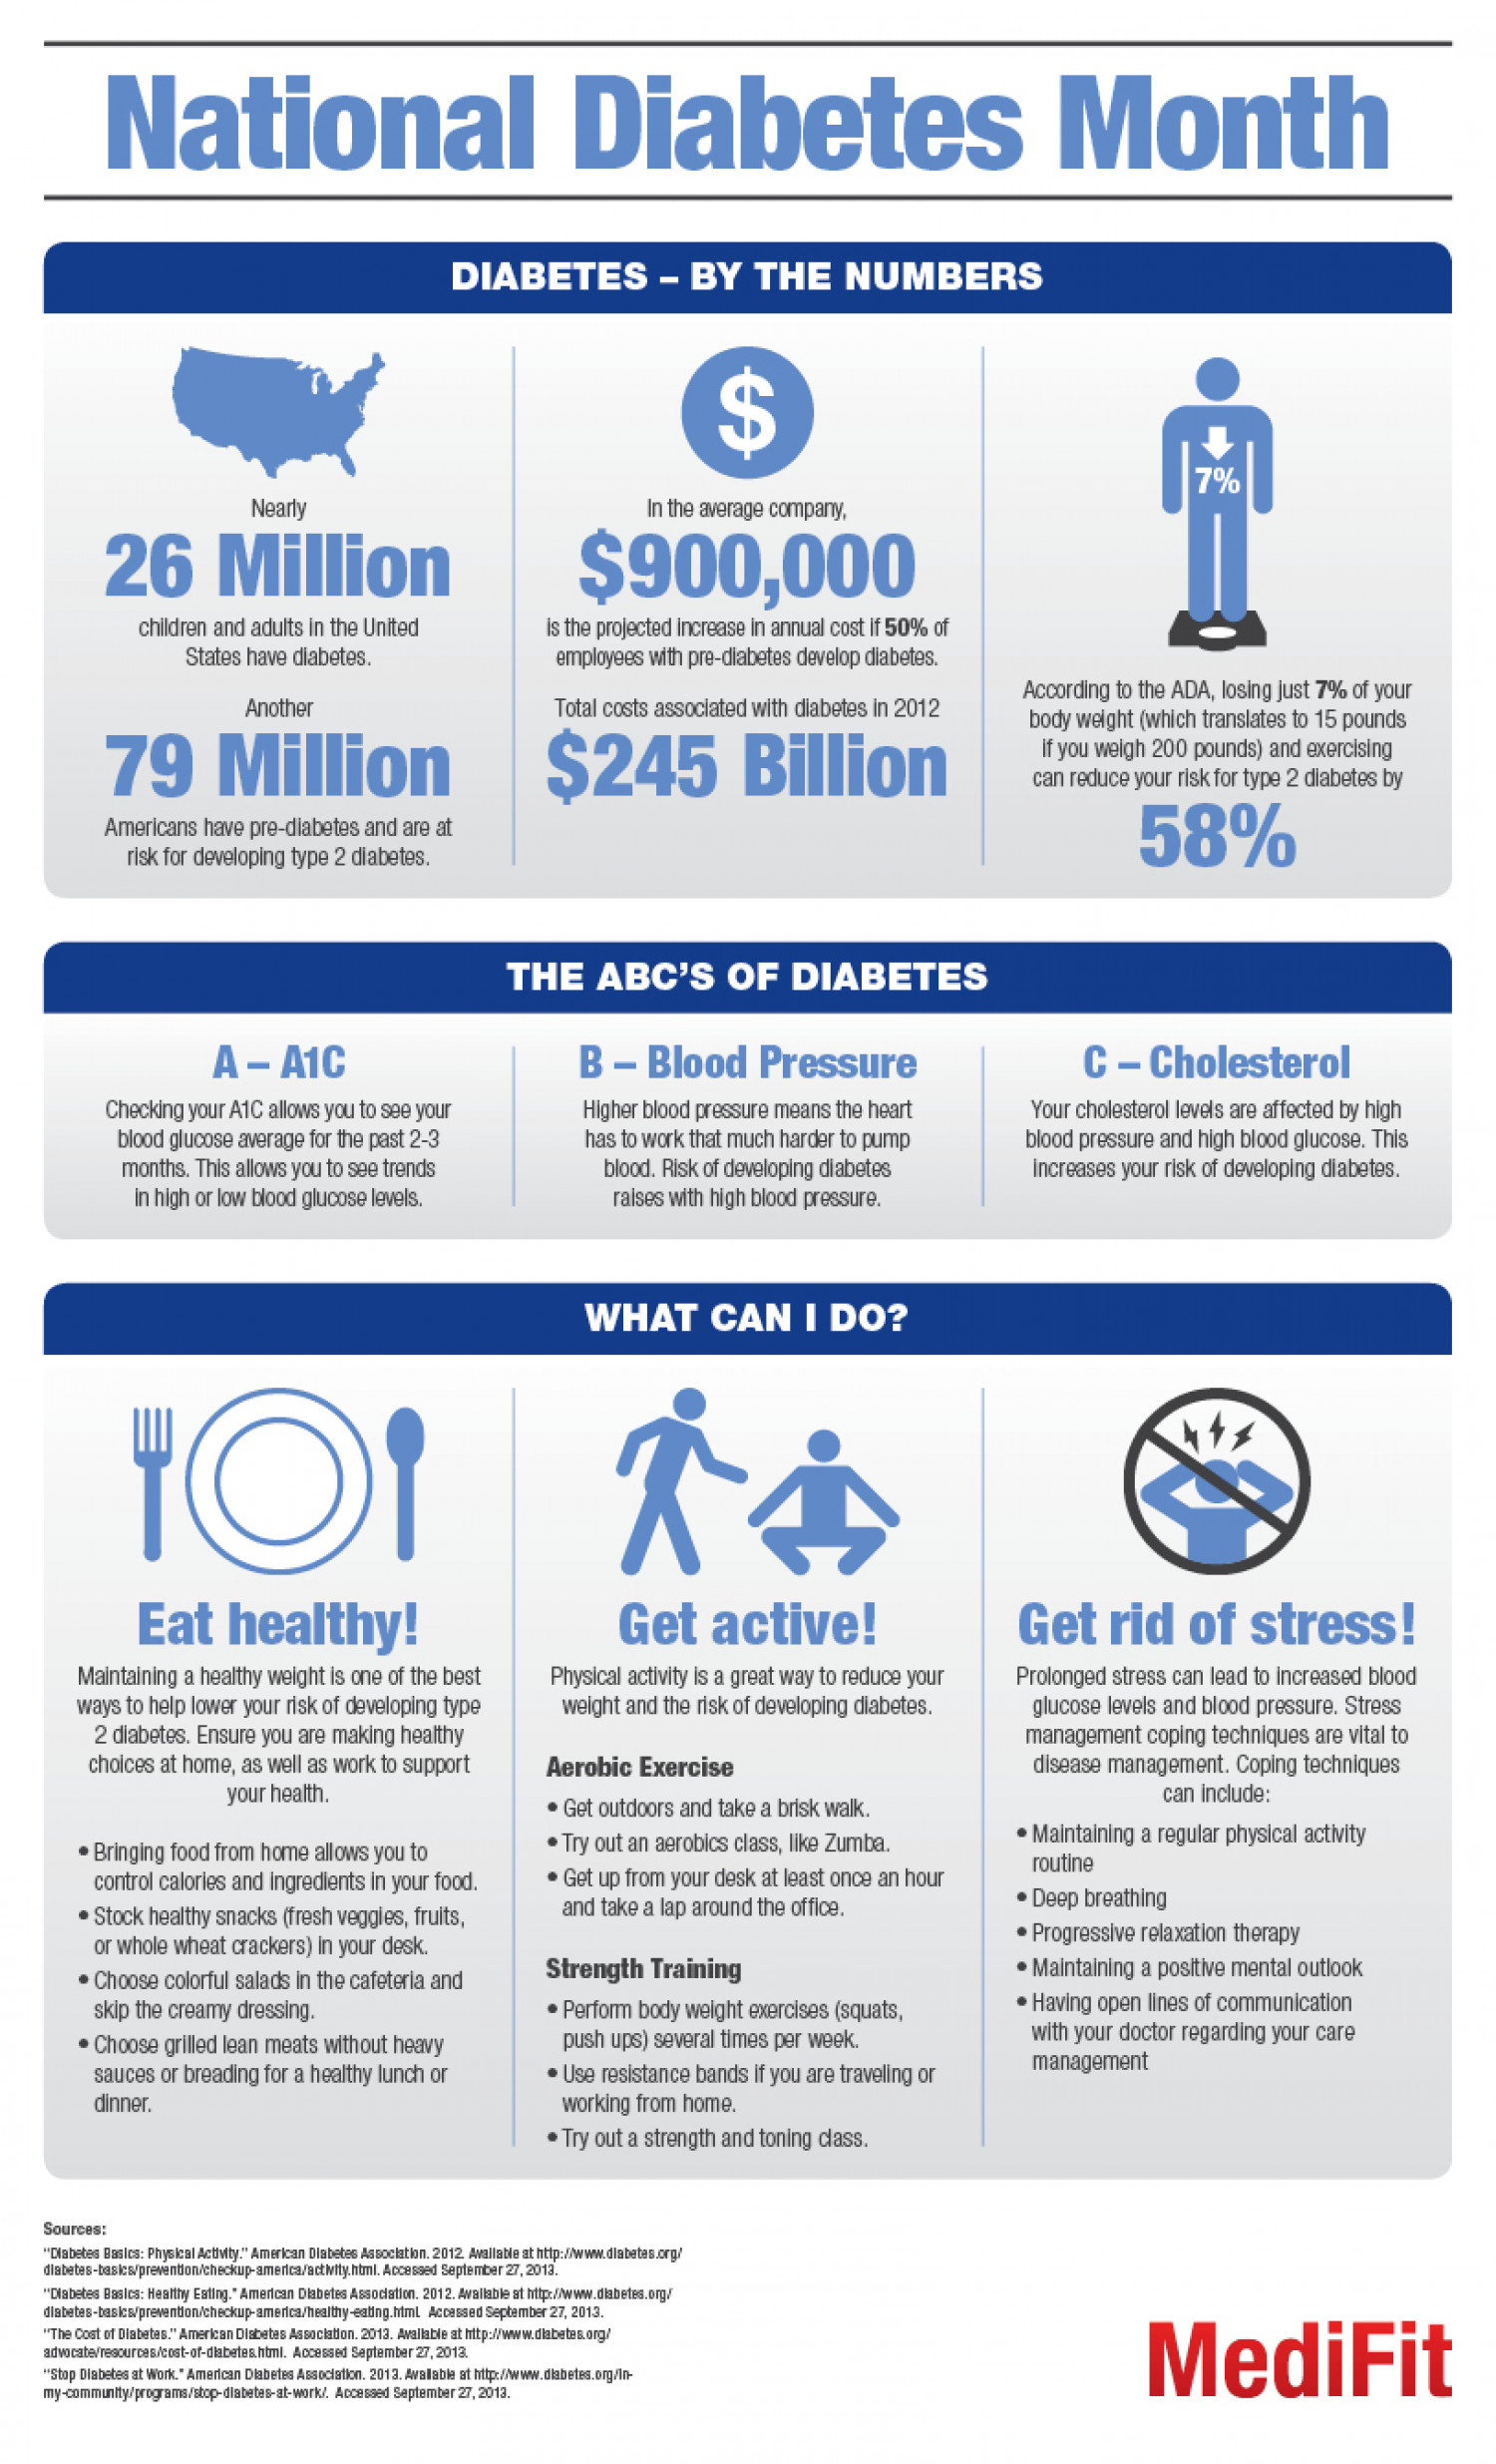 Diabetes Month: An Infographic Infographic